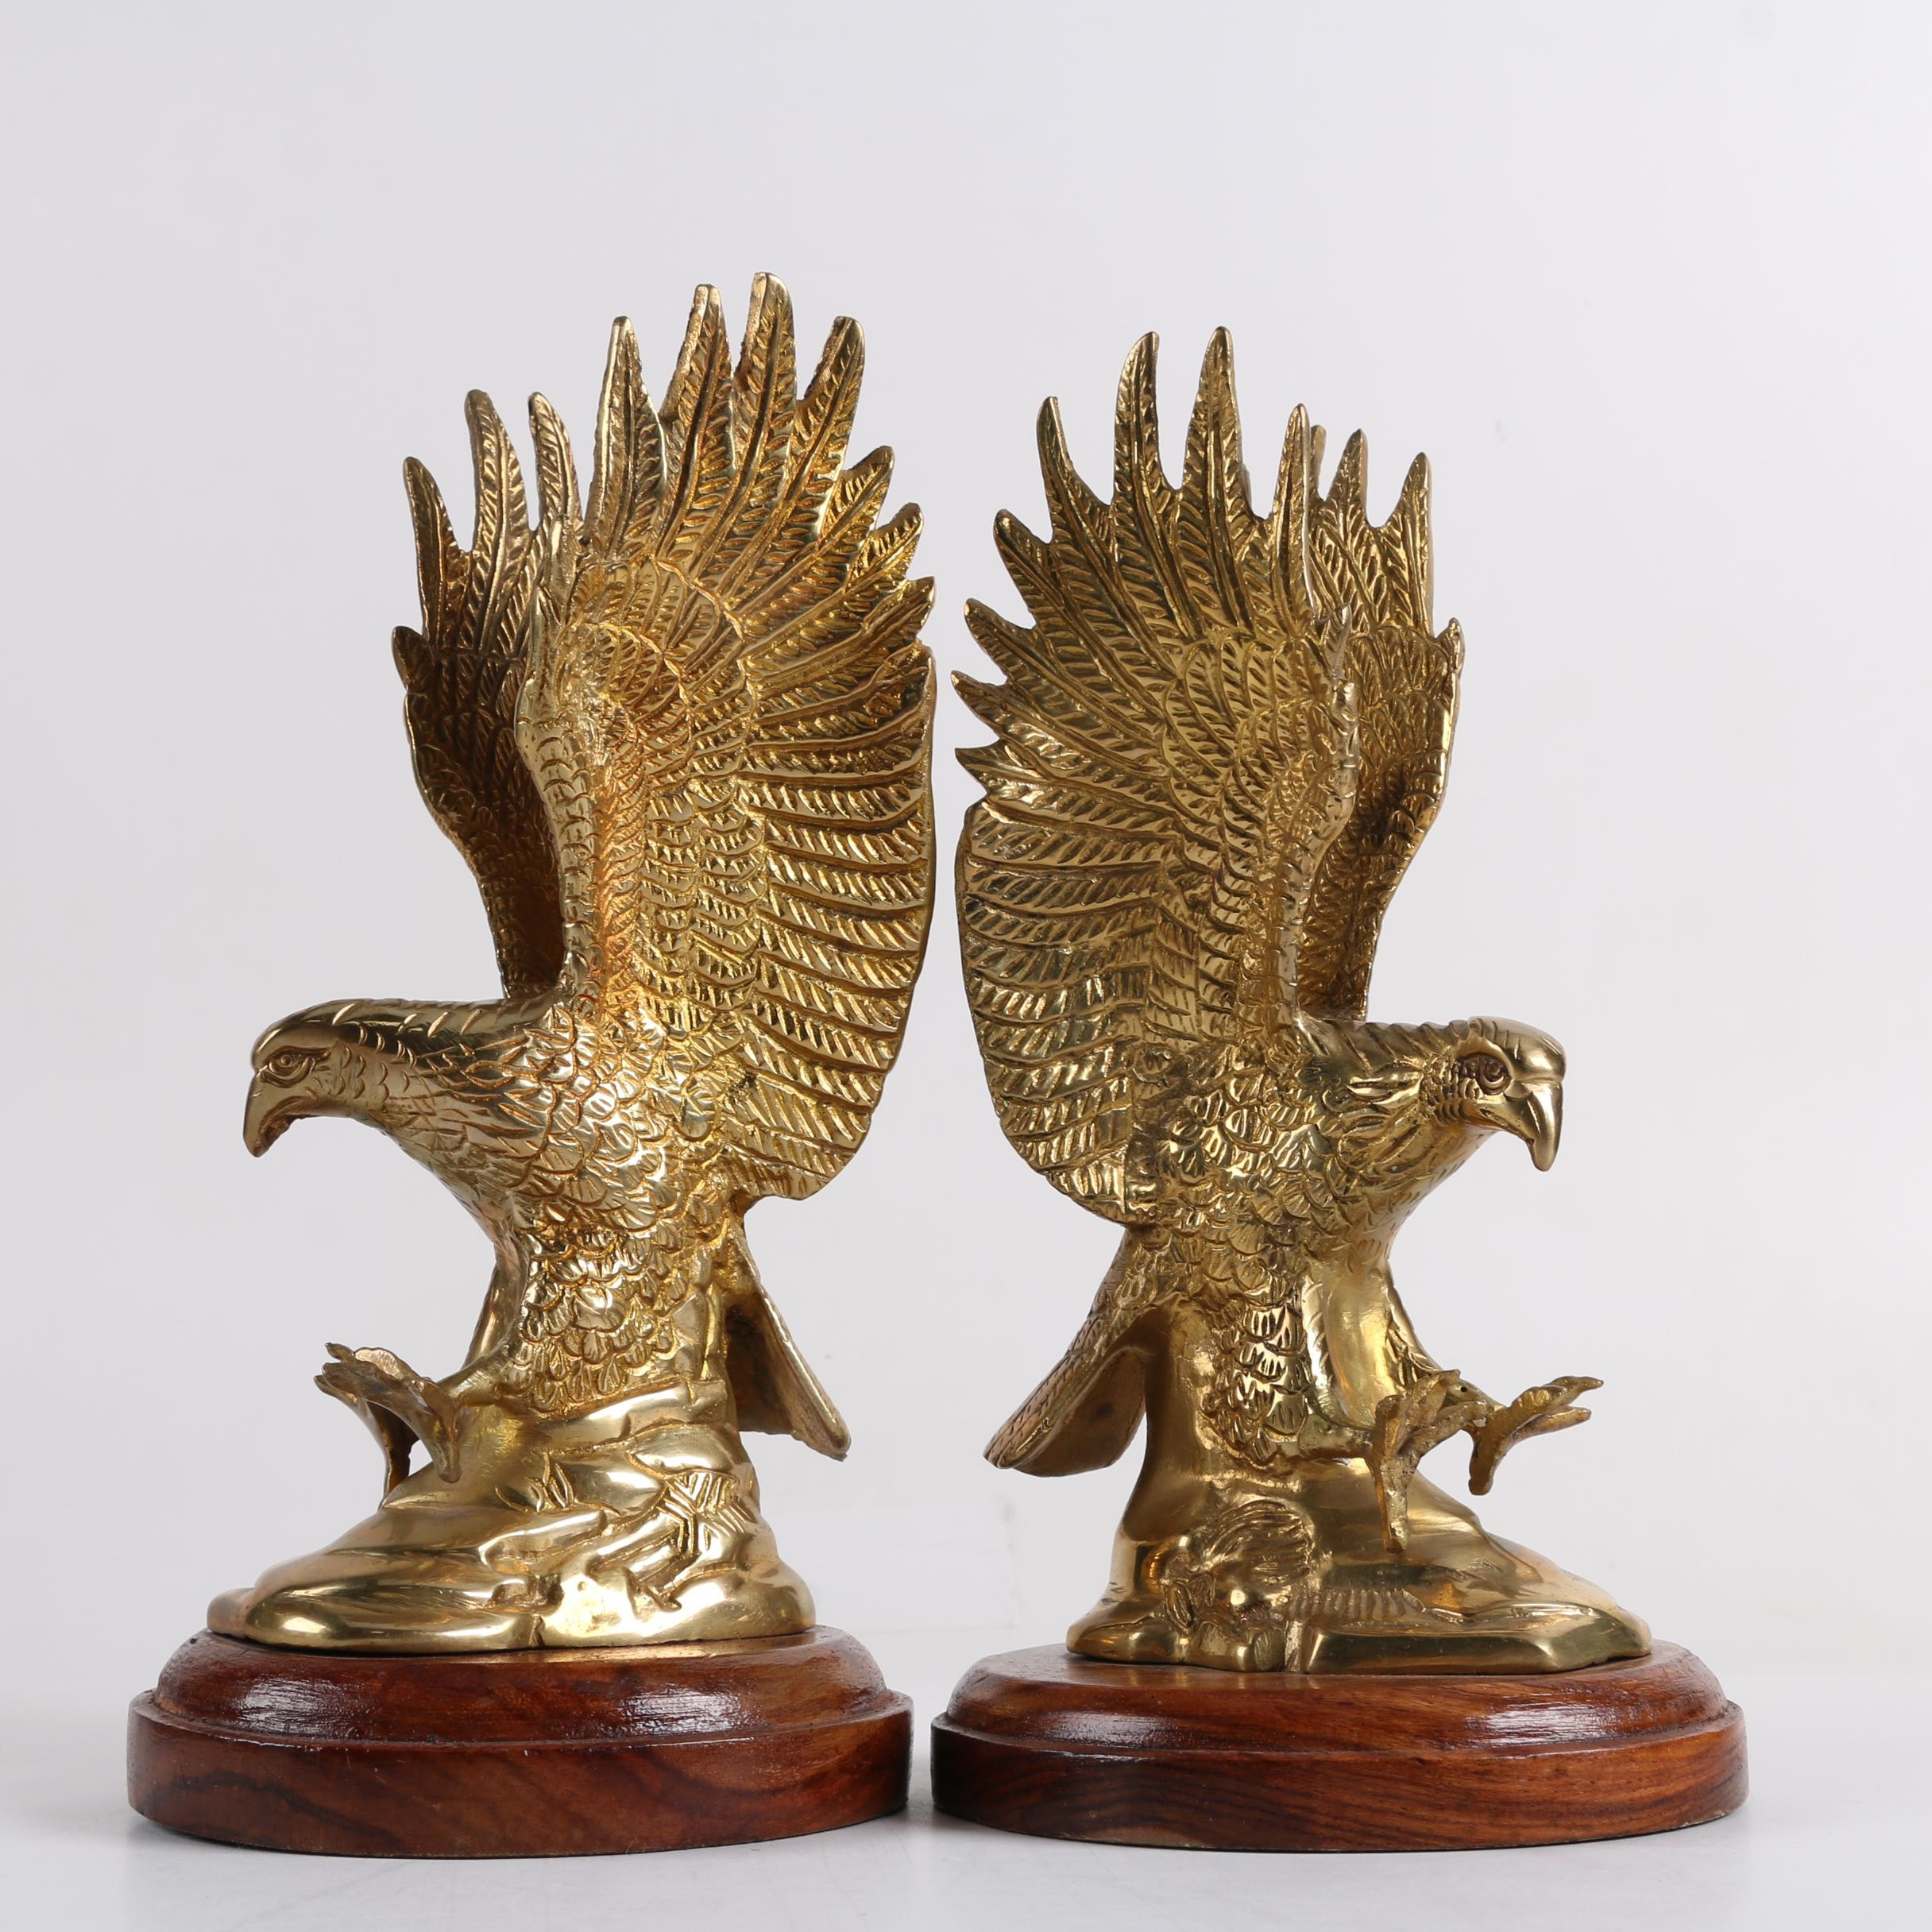 Indian Solid Brass Eagle Bookends with Wooden Bases